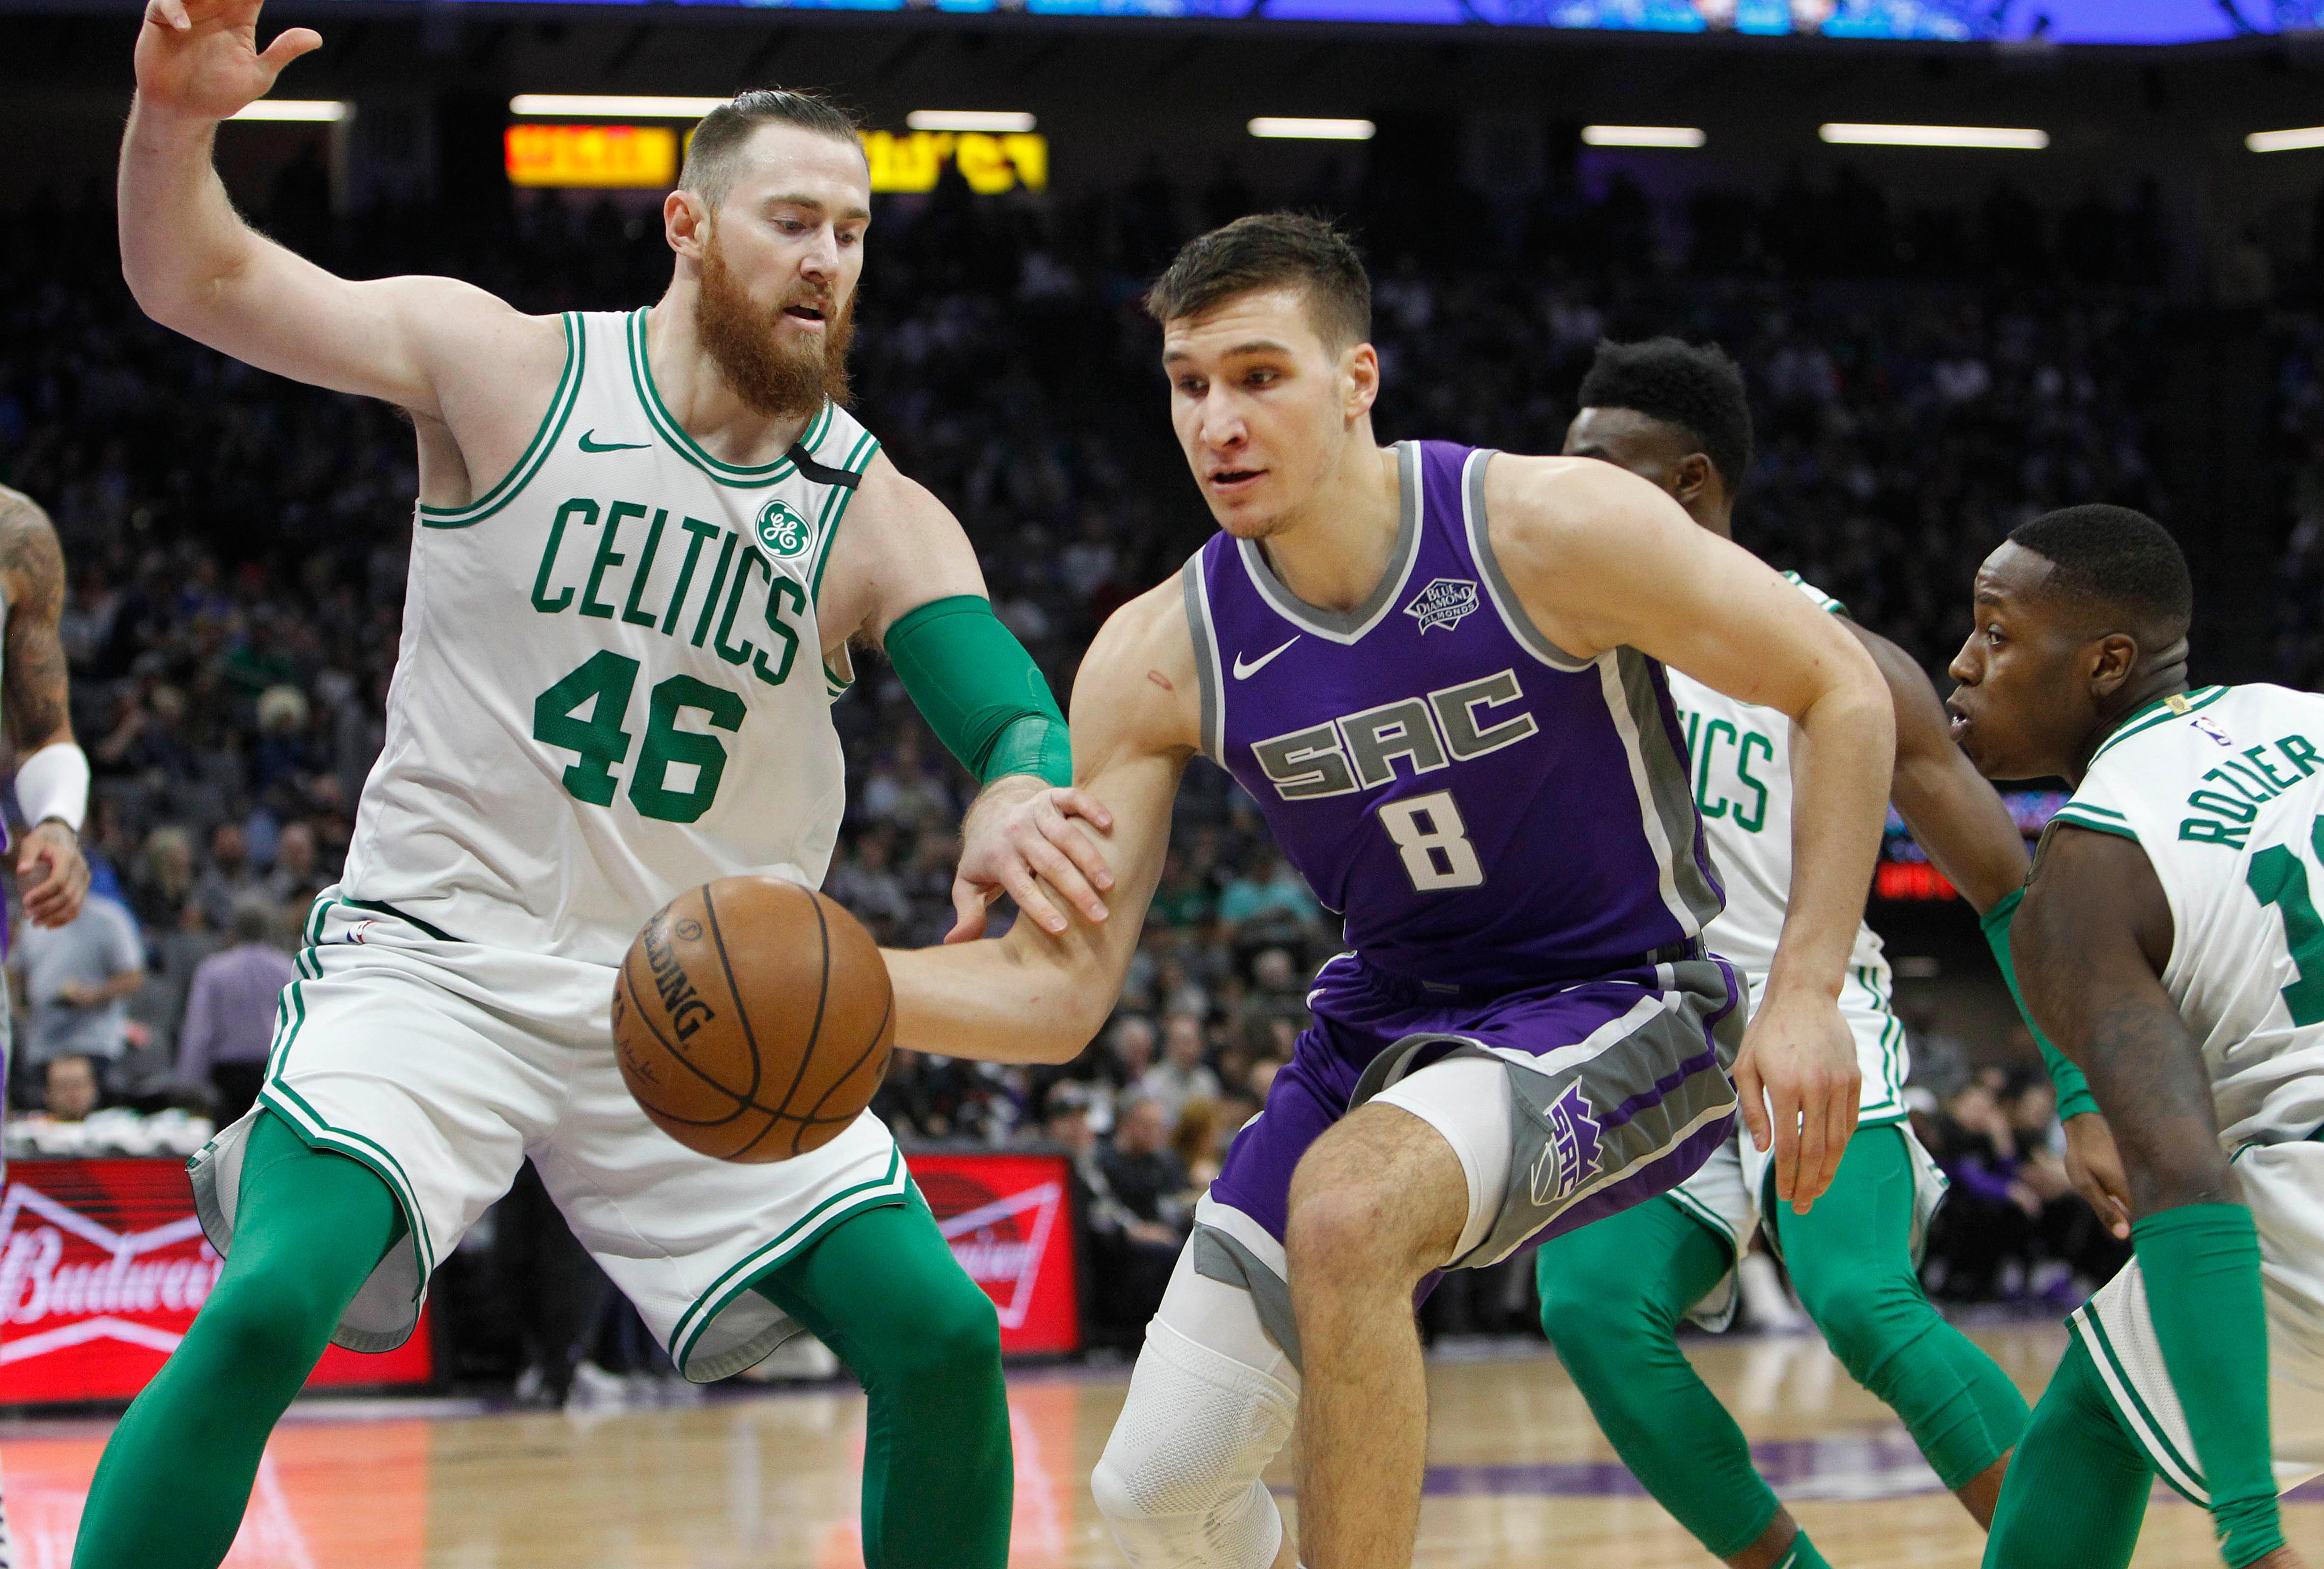 Sacramento Kings guard Bogdan Bogdanovic (8) drives to the basket against Boston Celtics center Aron Baynes (46) during the first half of an NBA basketball game in Sacramento, Calif., Sunday, March 25, 2018. (AP Photo/Steve Yeater)